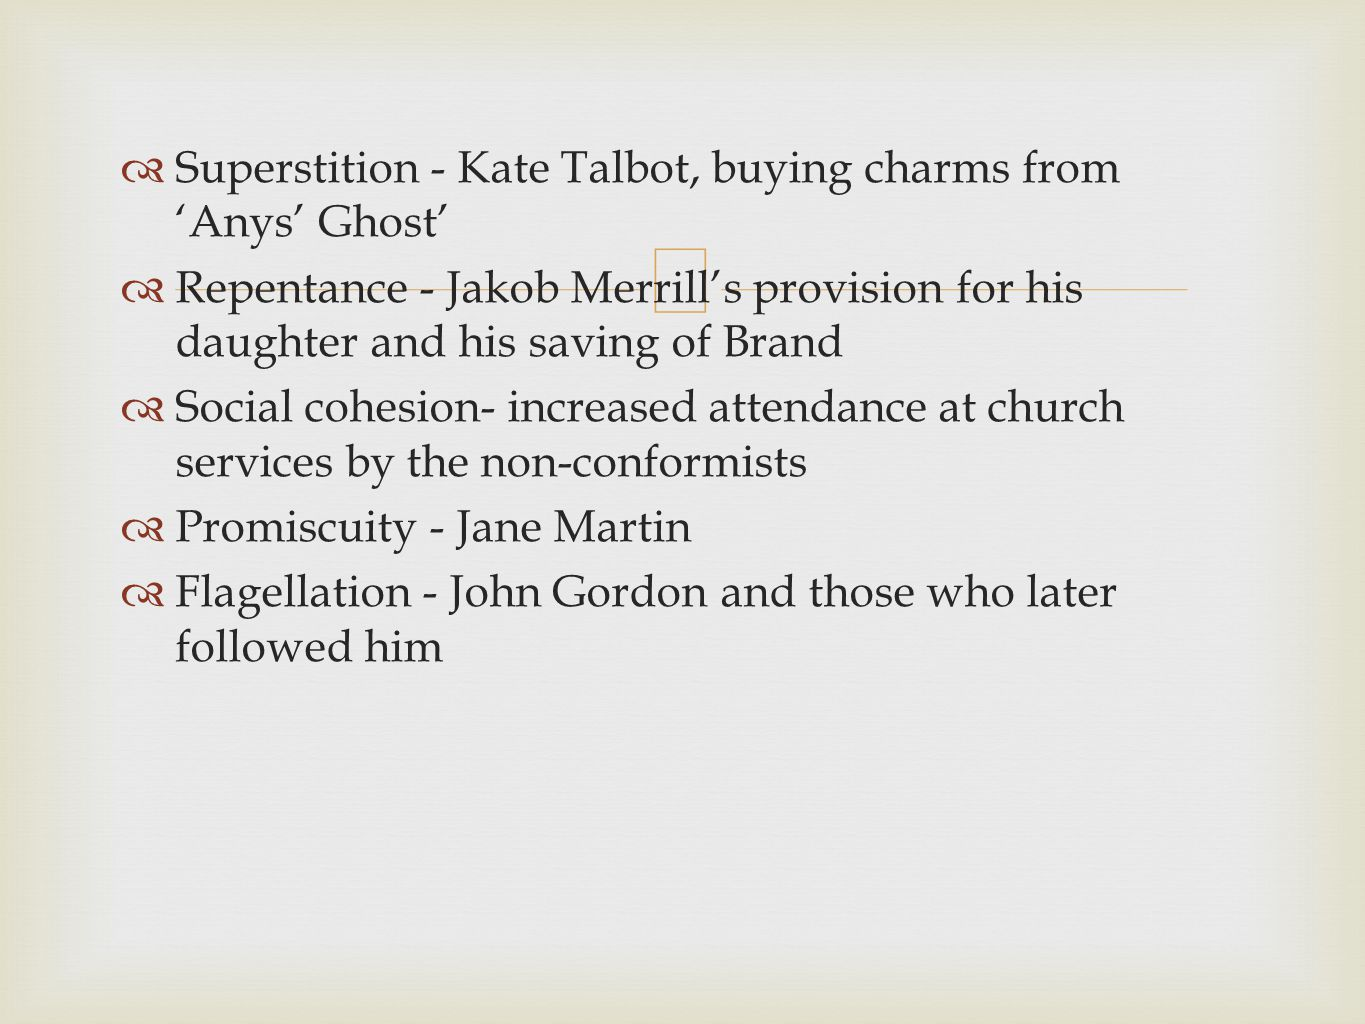 Superstition - Kate Talbot, buying charms from Anys Ghost Repentance - Jakob Merrills provision for his daughter and his saving of Brand Social cohesion- increased attendance at church services by the non-conformists Promiscuity - Jane Martin Flagellation - John Gordon and those who later followed him